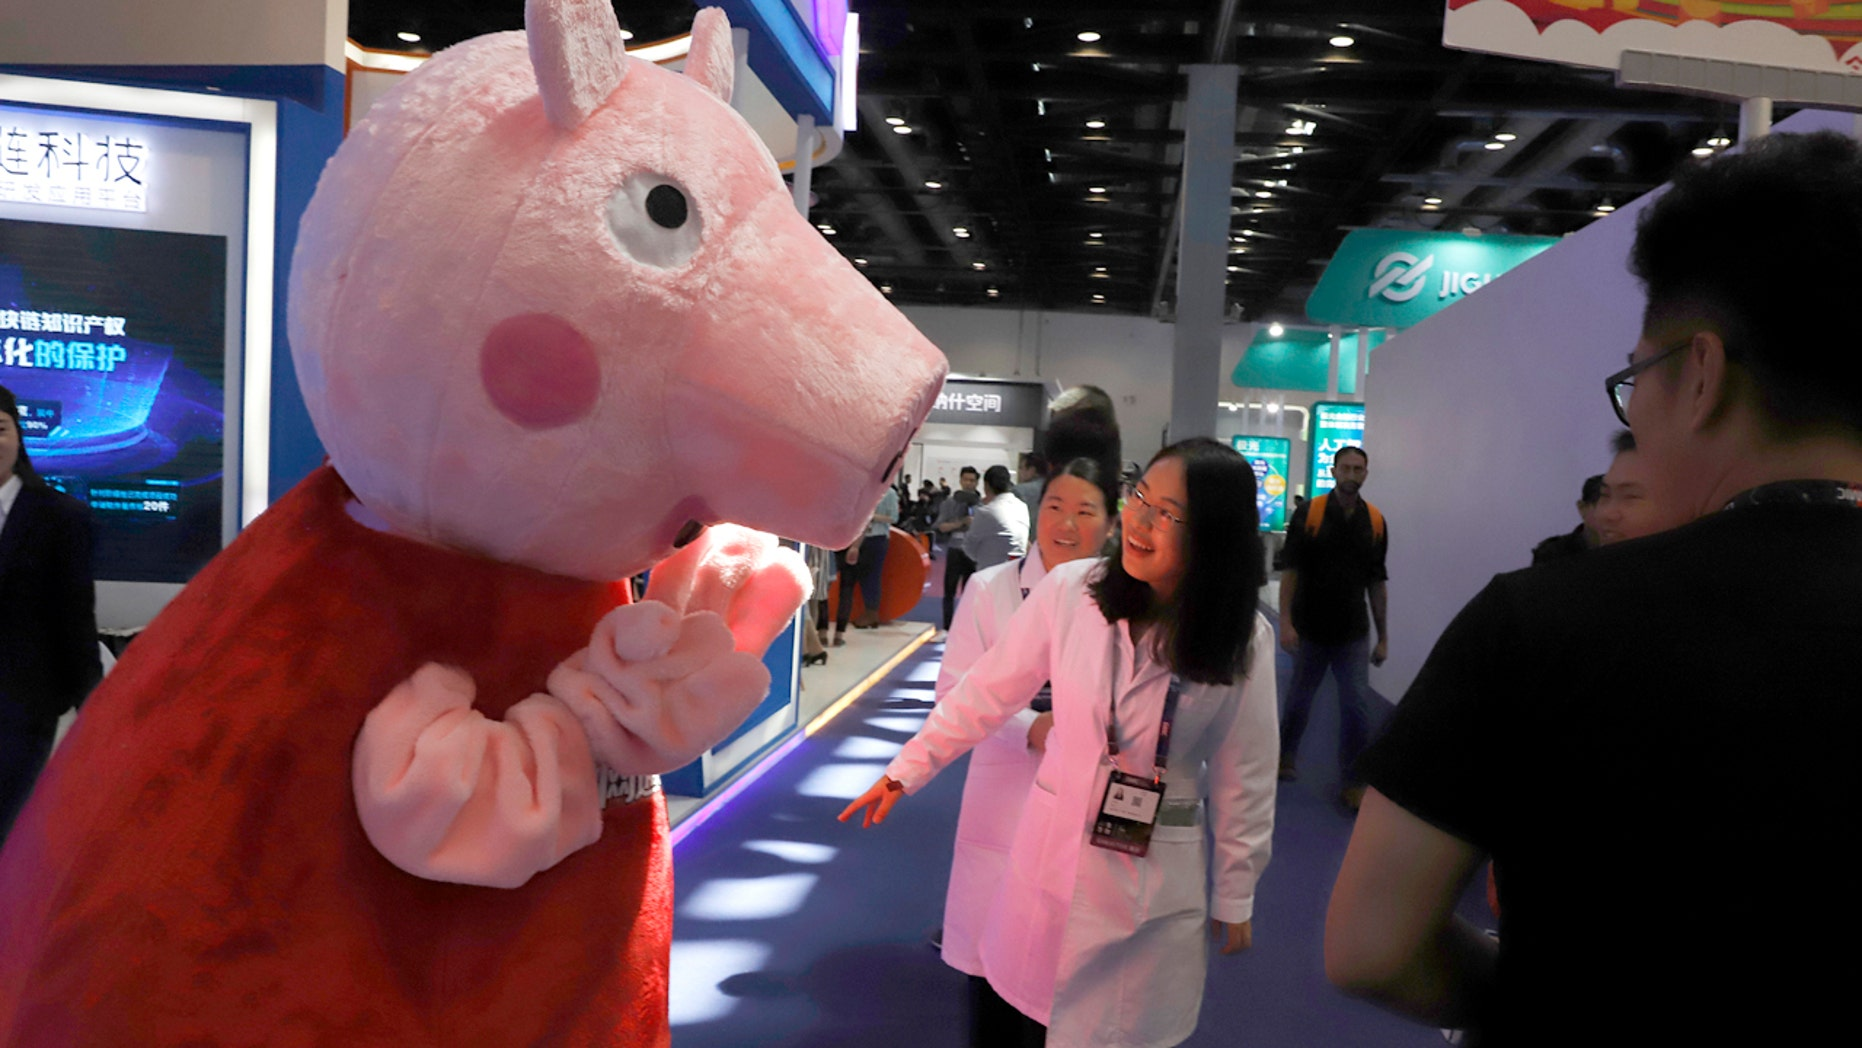 "In this April 27, 2018 photo, a woman reacts to a Peppa Pig mascot during the Global Mobile Internet Conference (GMIC) in Beijing, China. The cherubic British cartoon character, Peppa Pig, has become an unlikely target of China's censors as online fans use her porcine likeness in sardonic memes and ""gangster"" catchphrases. (AP Photo/Ng Han Guan)"